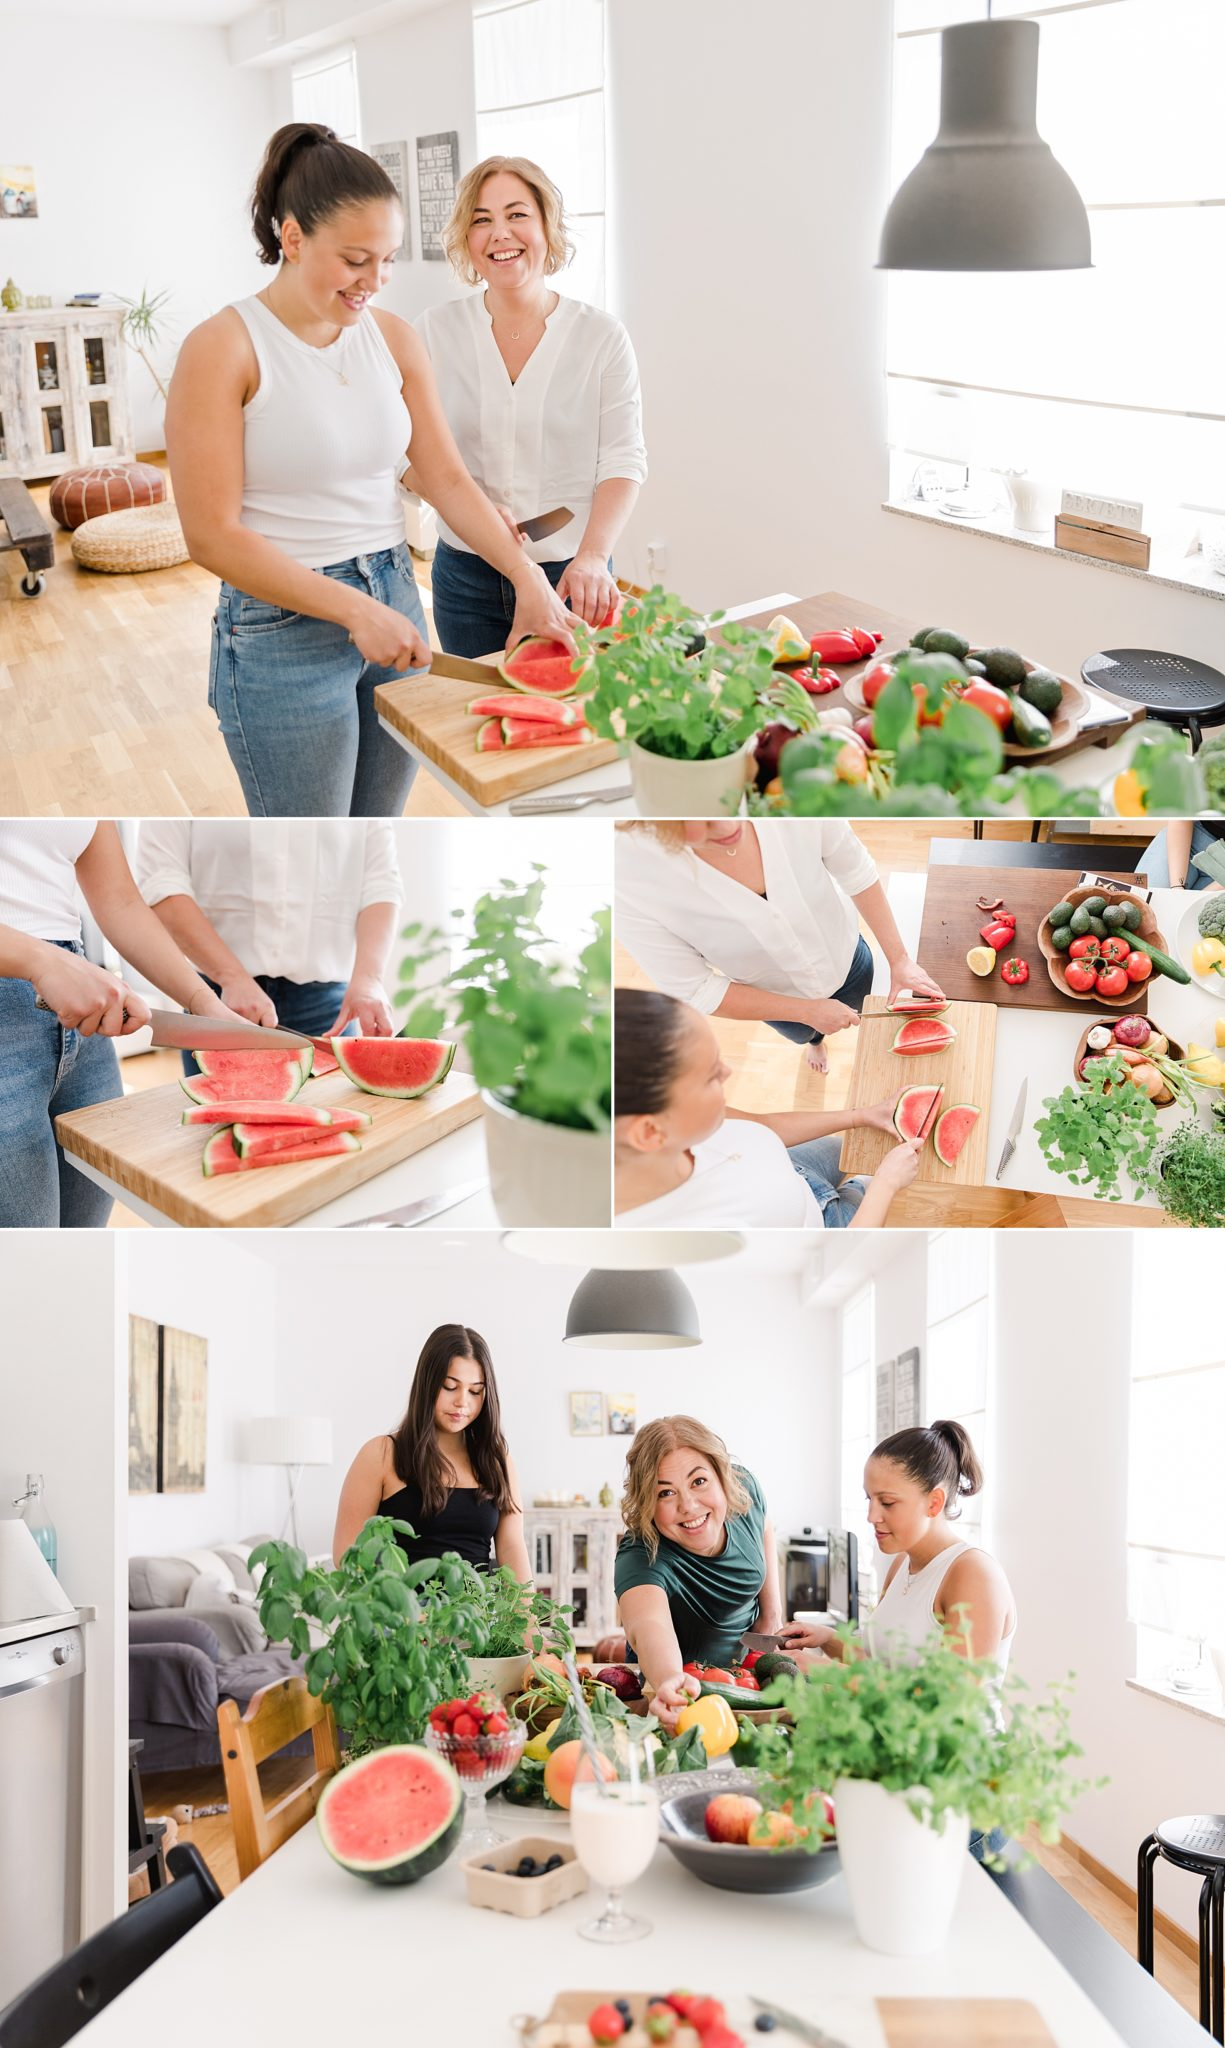 A woman and her daughters preparing healthy food